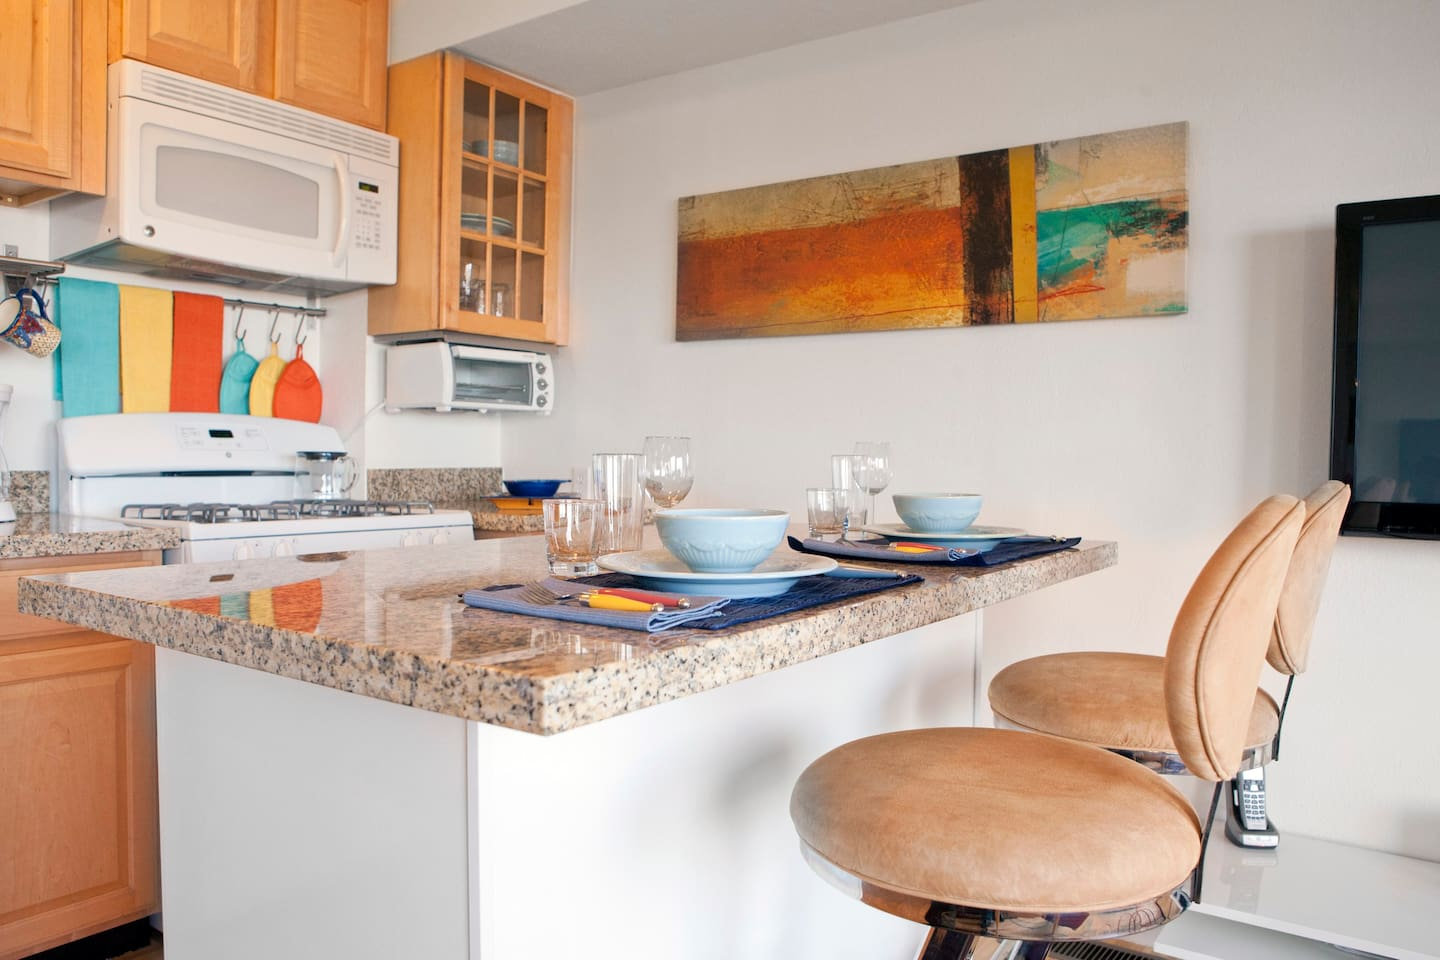 Newly remodeled kitchen with new appliances.  Fully equipped with cooking and dining ware.